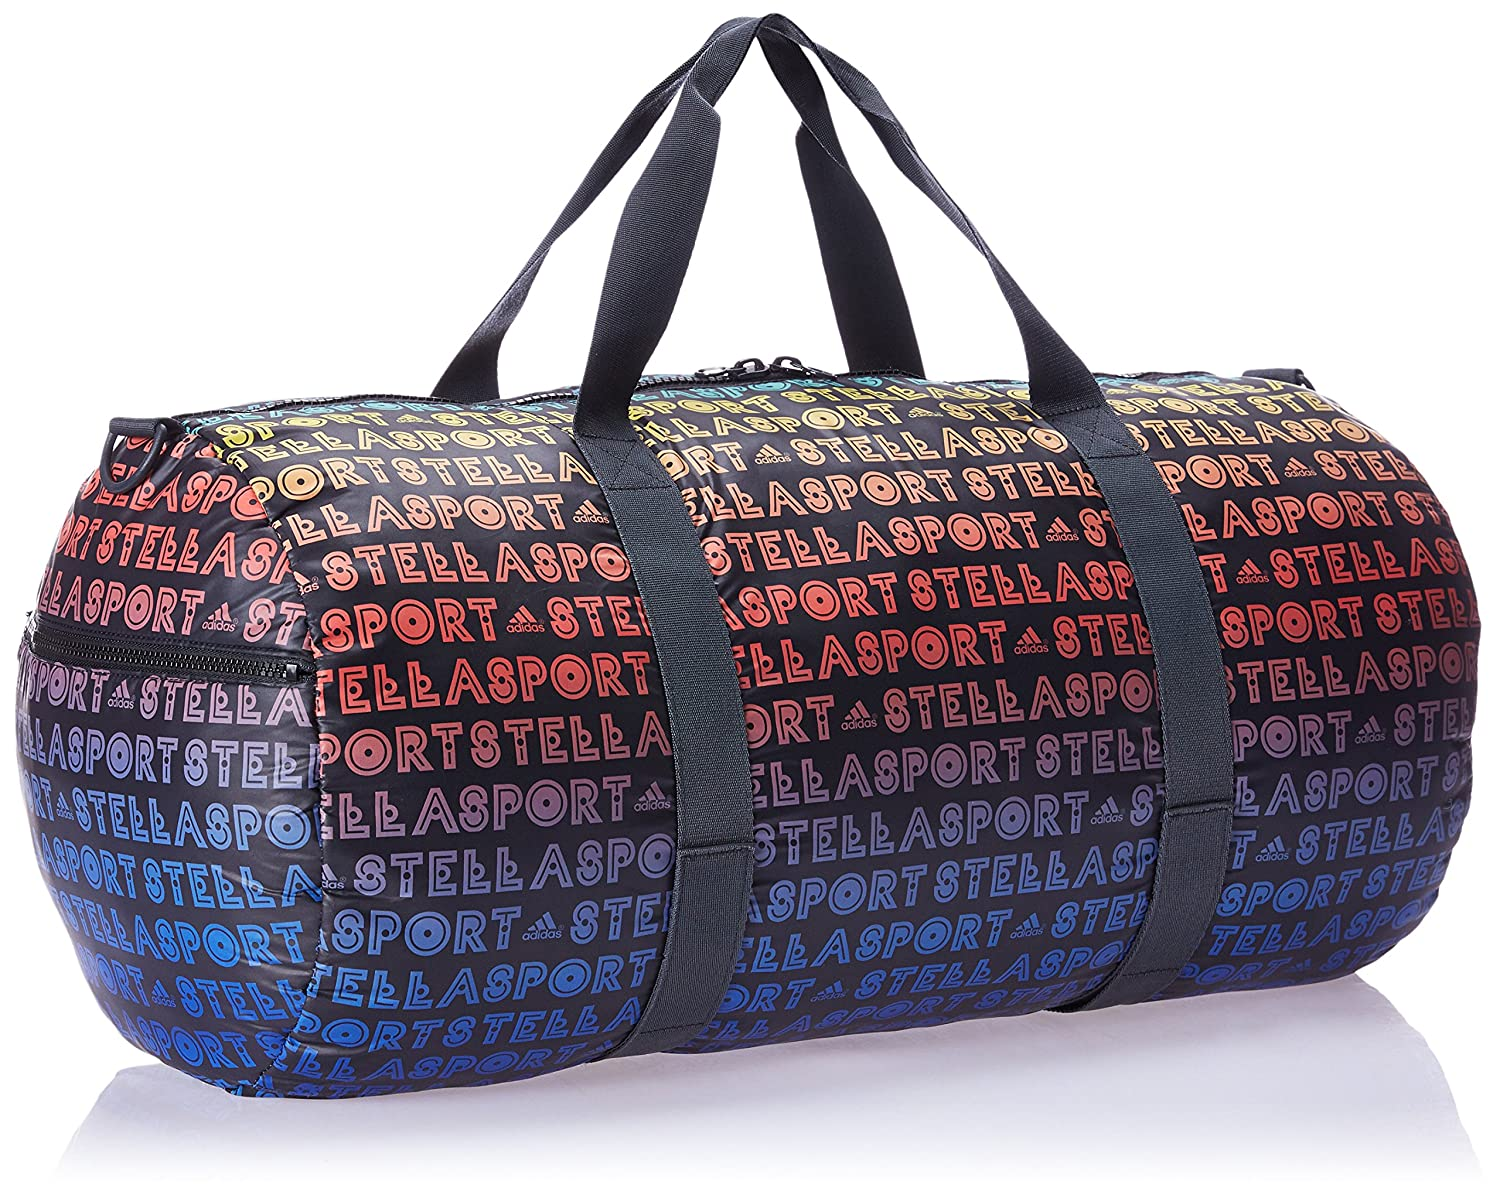 Adidas Stella McCartney Holdall Bag Womens Sports Team Gym Bag Stellasport  AH6765  Amazon.ca  Luggage   Bags b5ca380351c0b